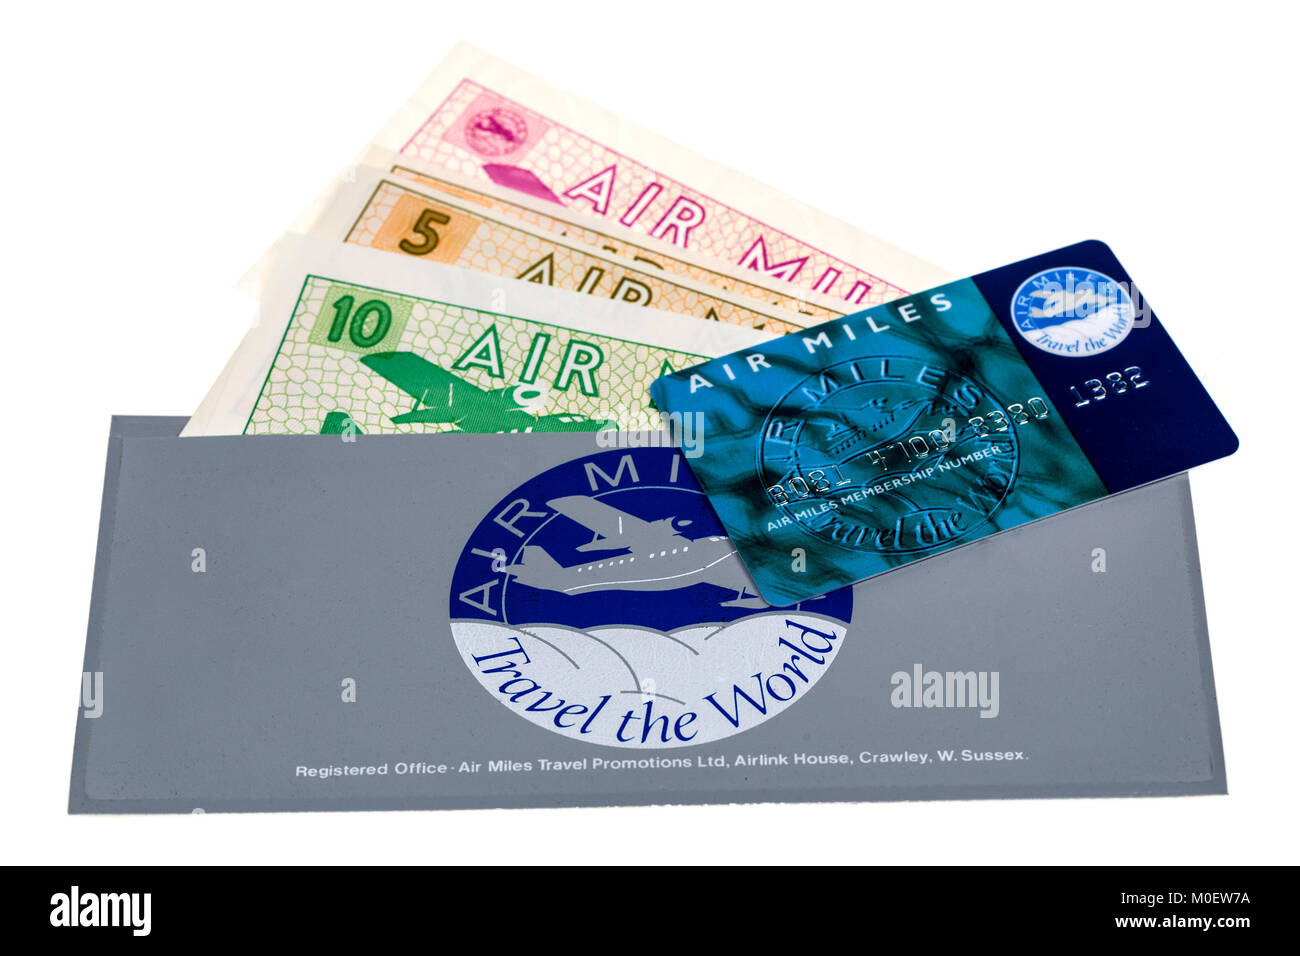 Air Miles wallet, vouchers and card - Stock Image